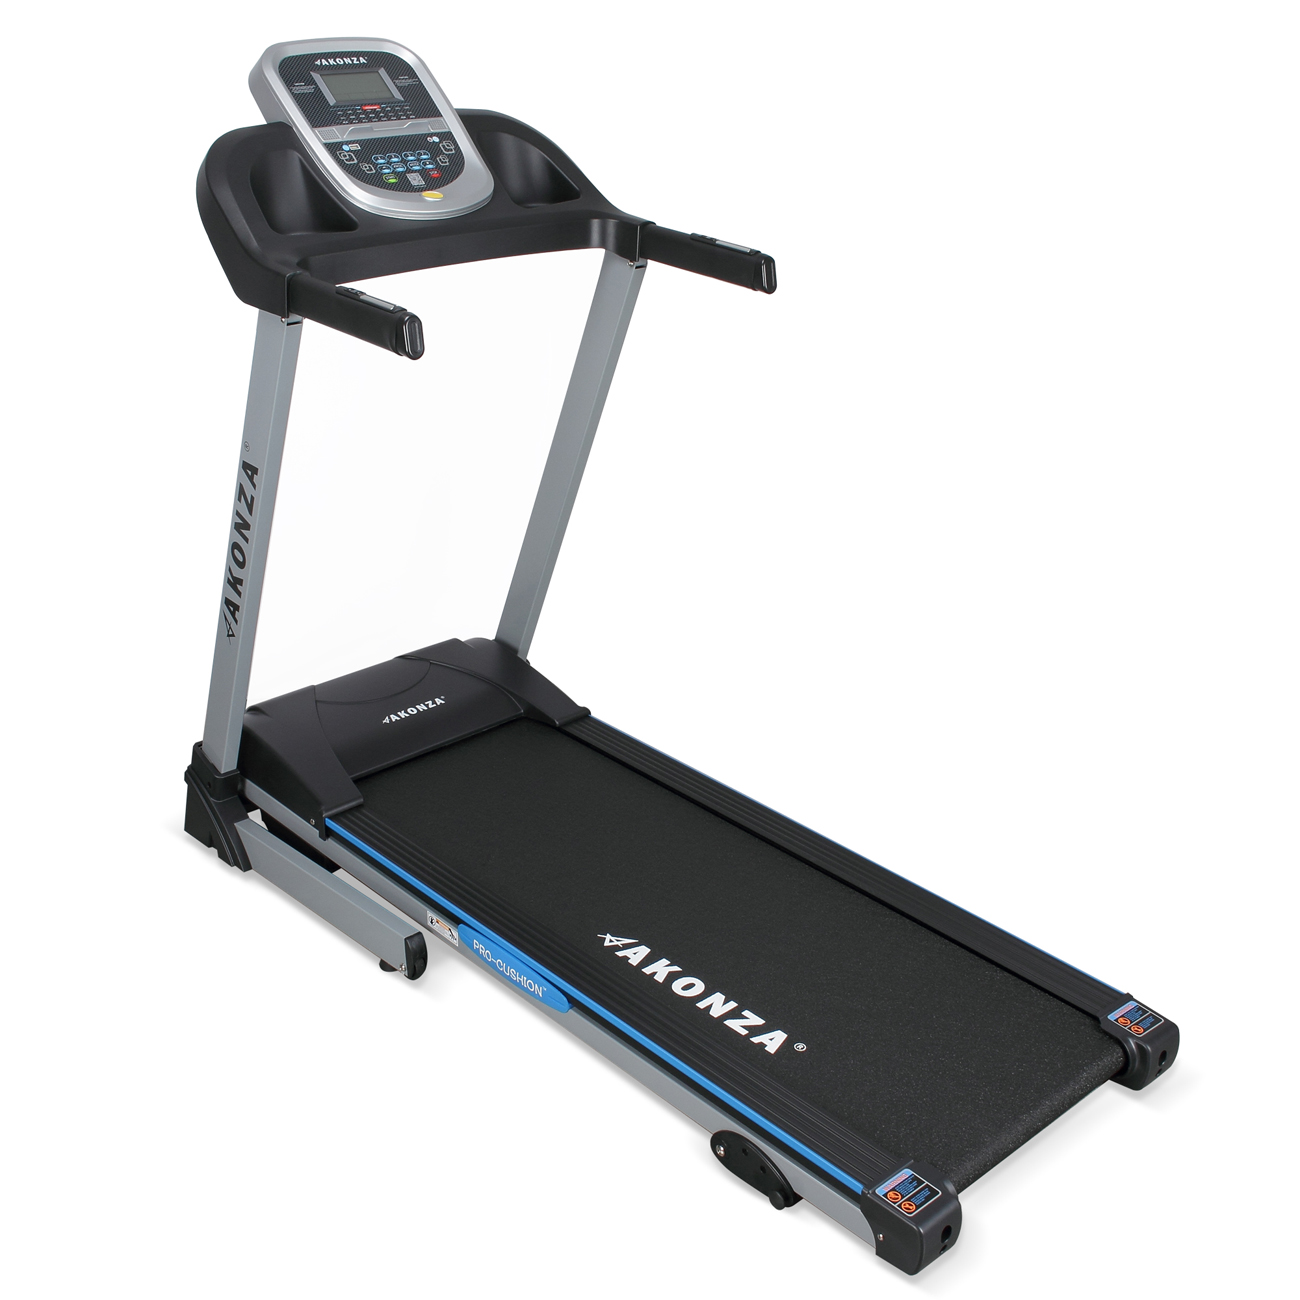 AKONZA Electric Exercise Fitness MP3 Phone 2 Cup Holder Steel Treadmill w/ Hand Grip Pulse Sensors